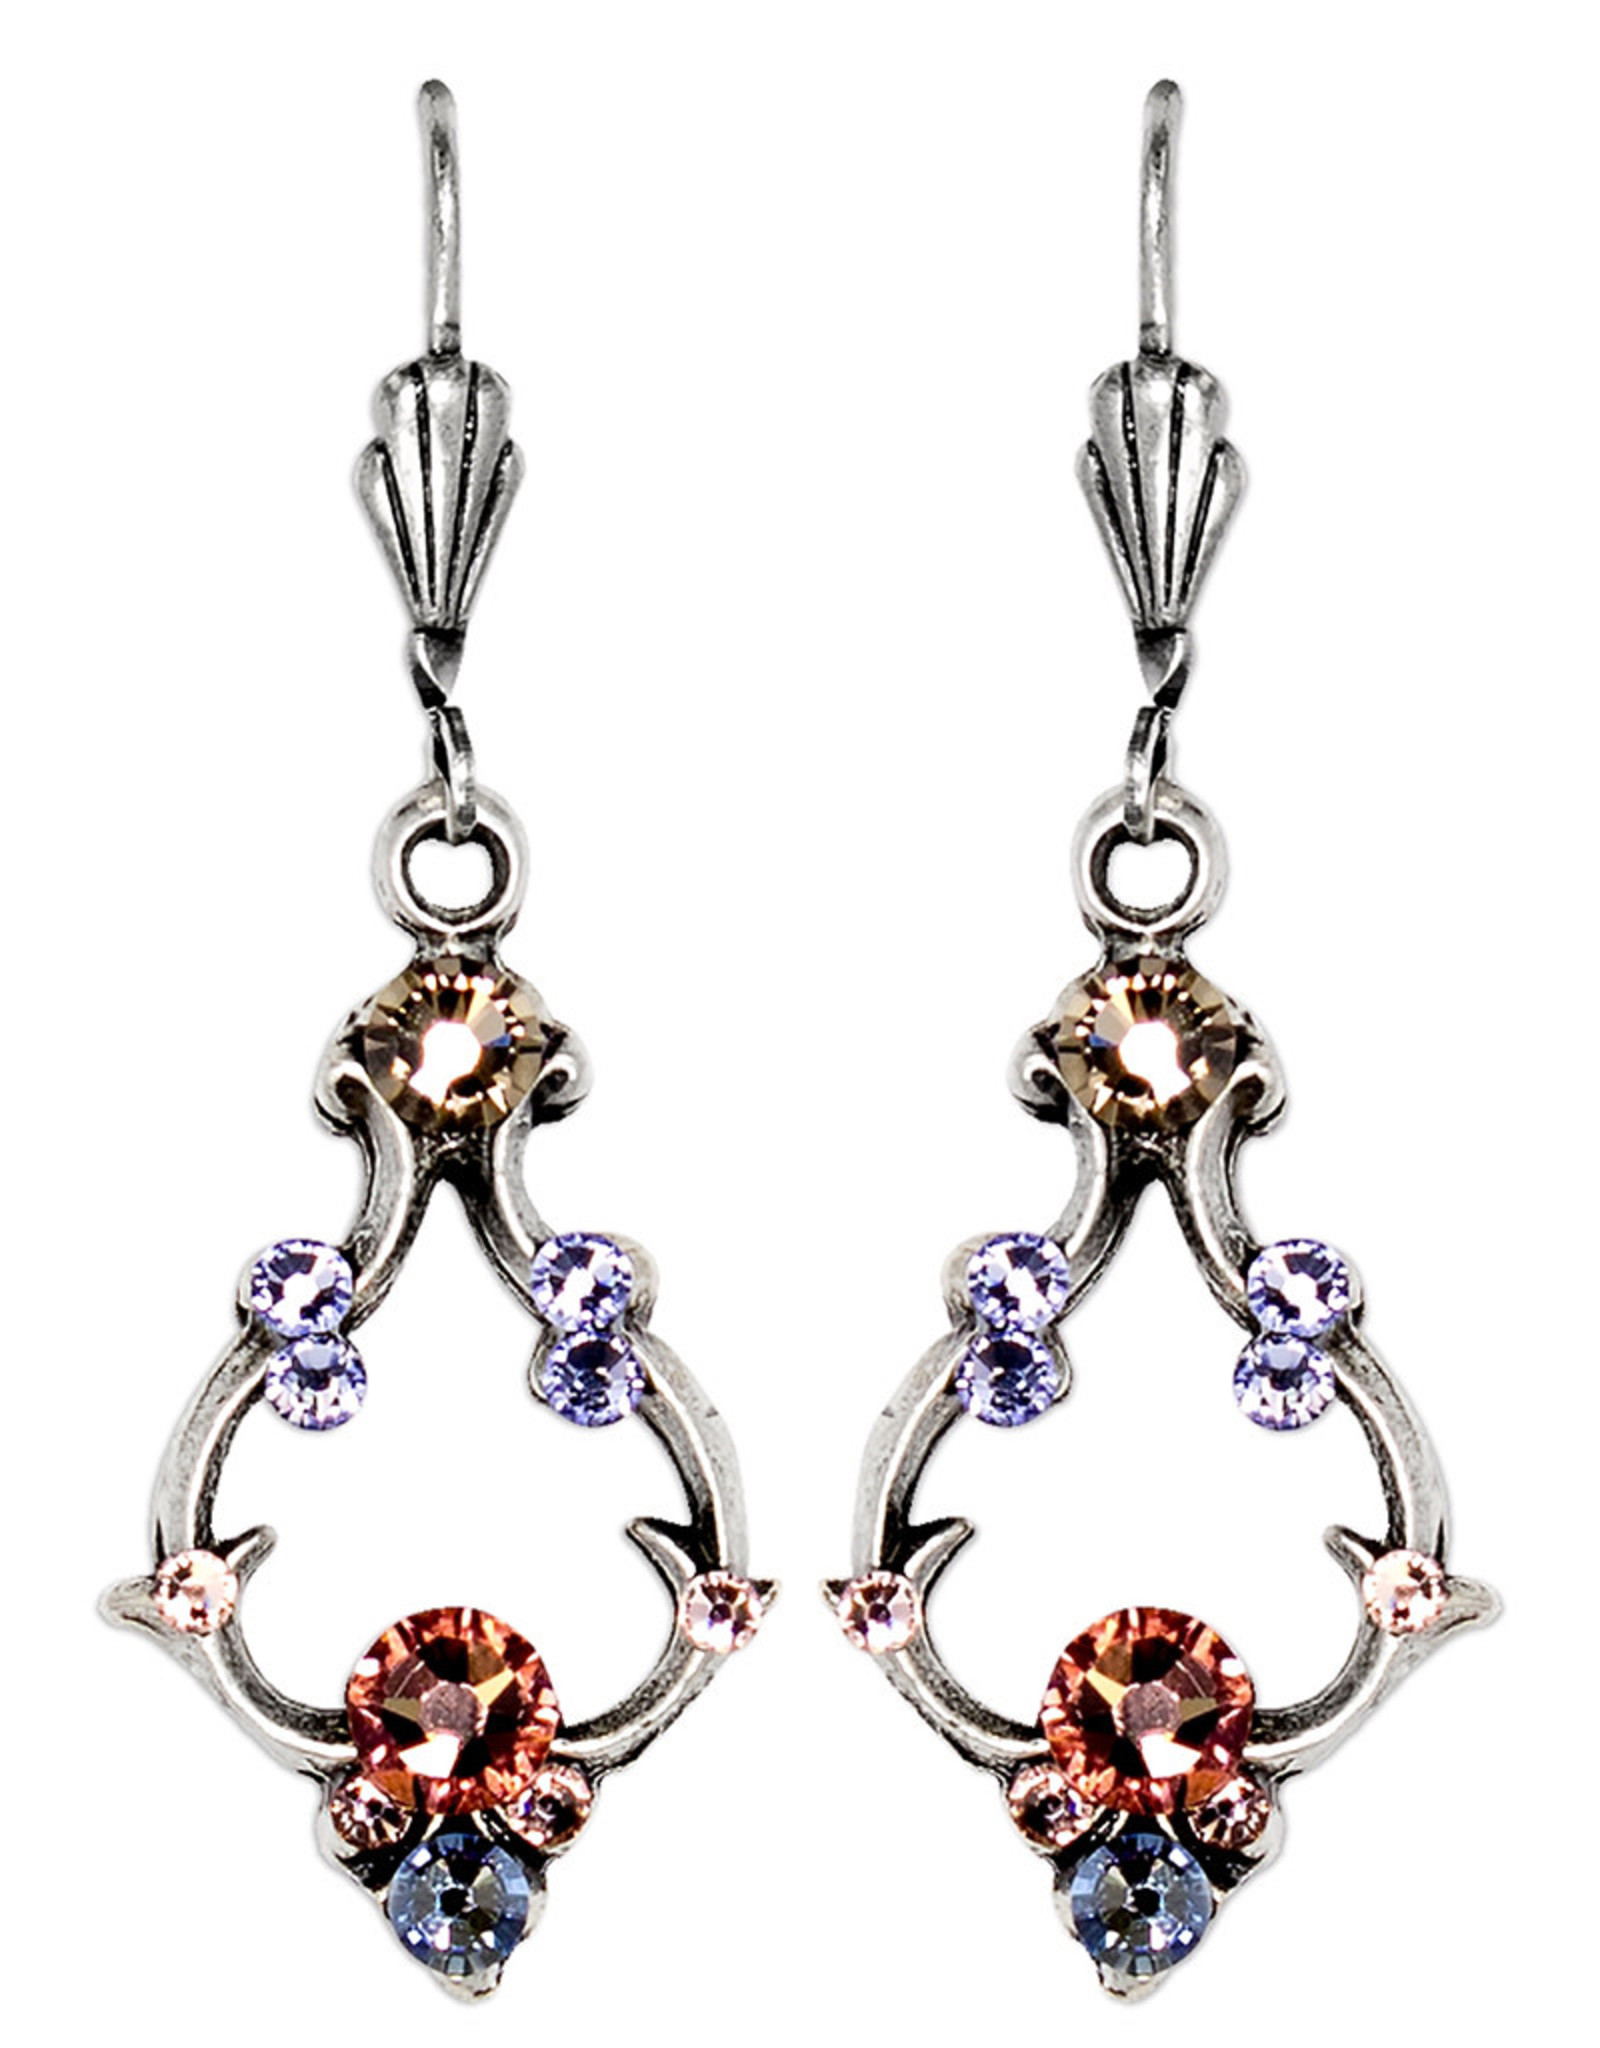 ANNE KOPLIK DESIGNS OPHELIA EARRINGS